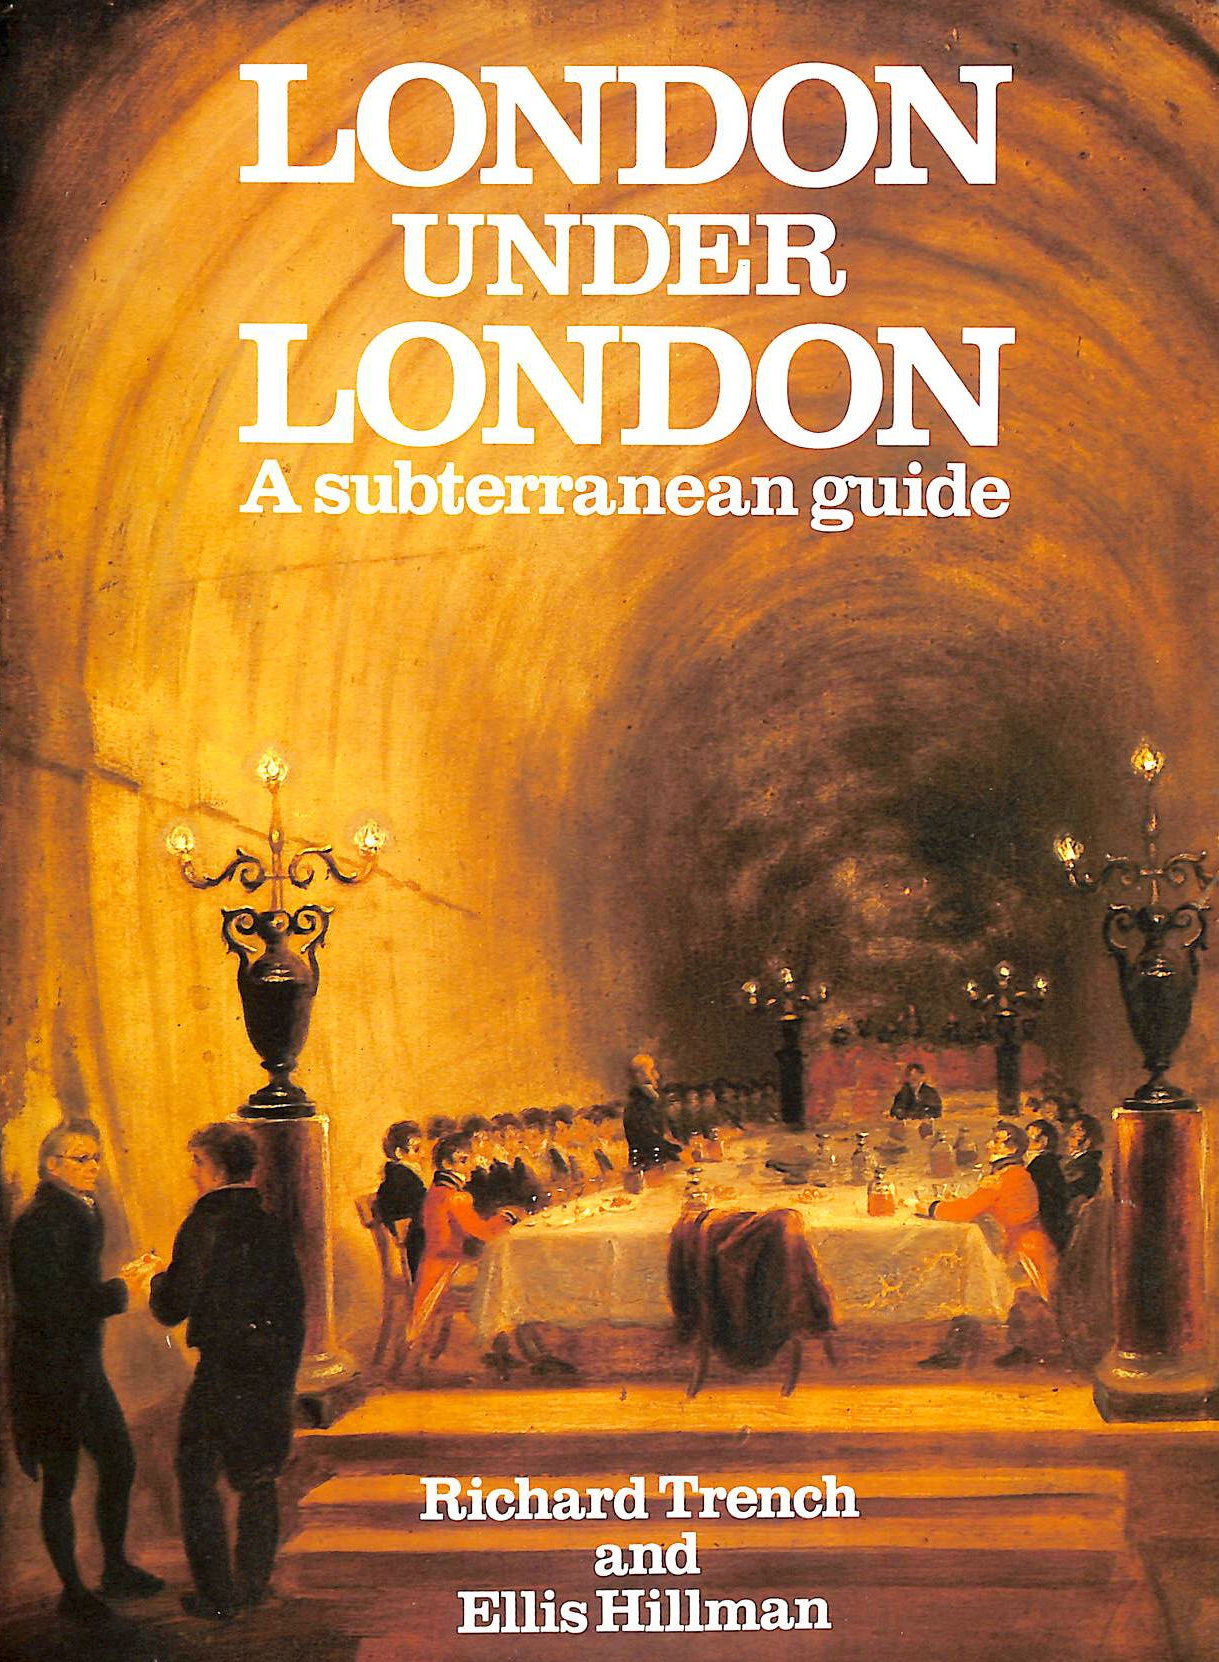 Image for London Under London: A Subterranean Guide